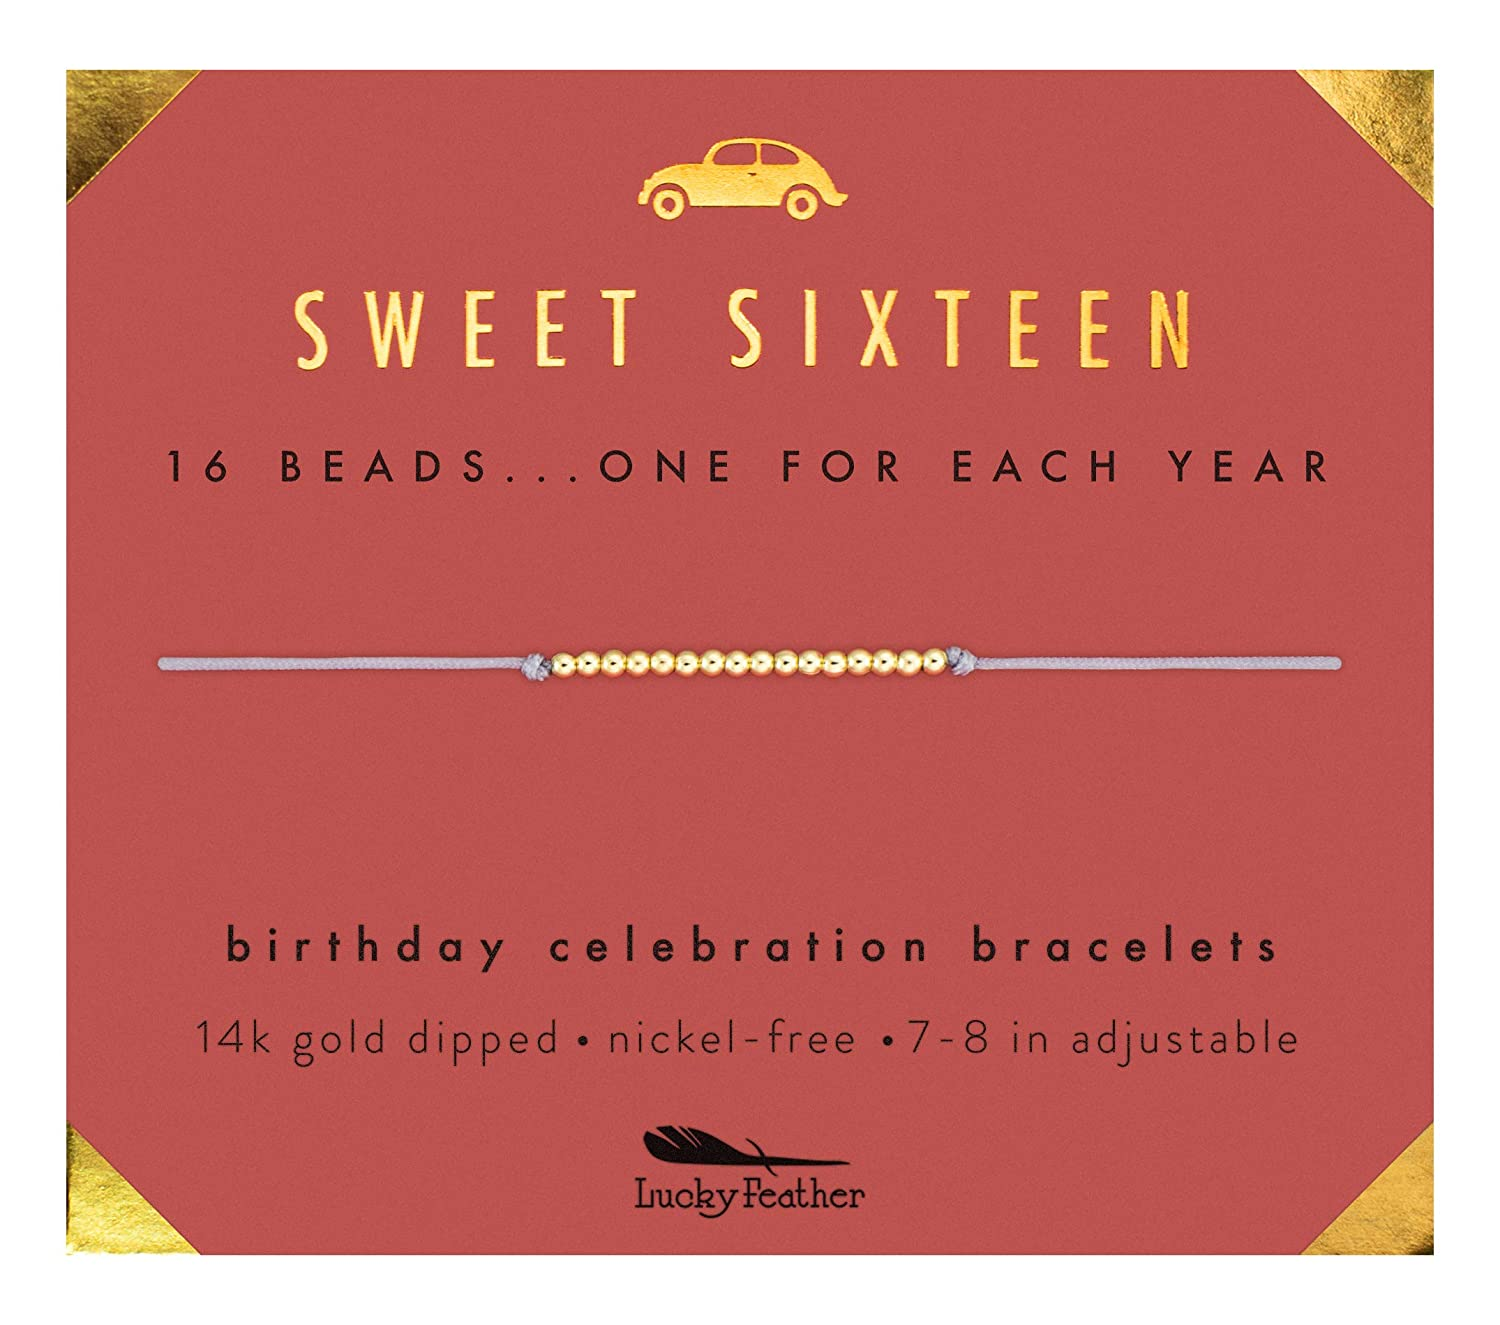 Lucky Feather Sweet 16 Gifts For Girls 16th Birthday Bracelet Gift Idea For 16 Year Old Girls With 14k Gold Dipped Beads On Adjustable Cord